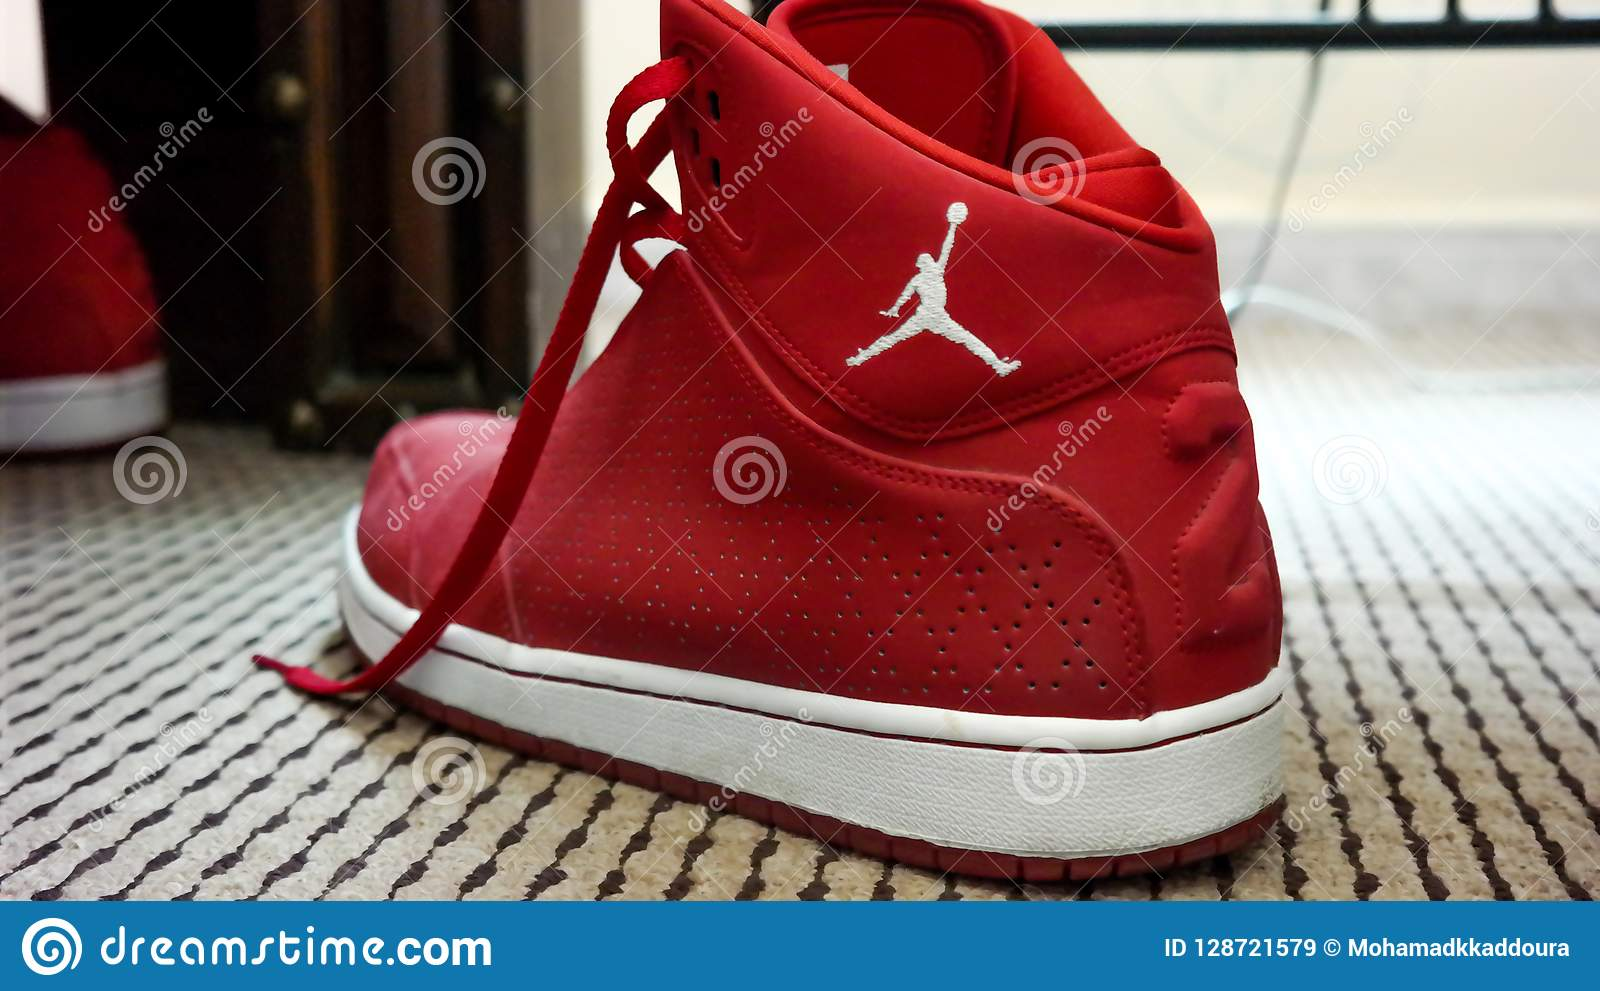 d42038f18ea8 Red And White Nike MJ 23 Sneakers Editorial Stock Image - Image of ...